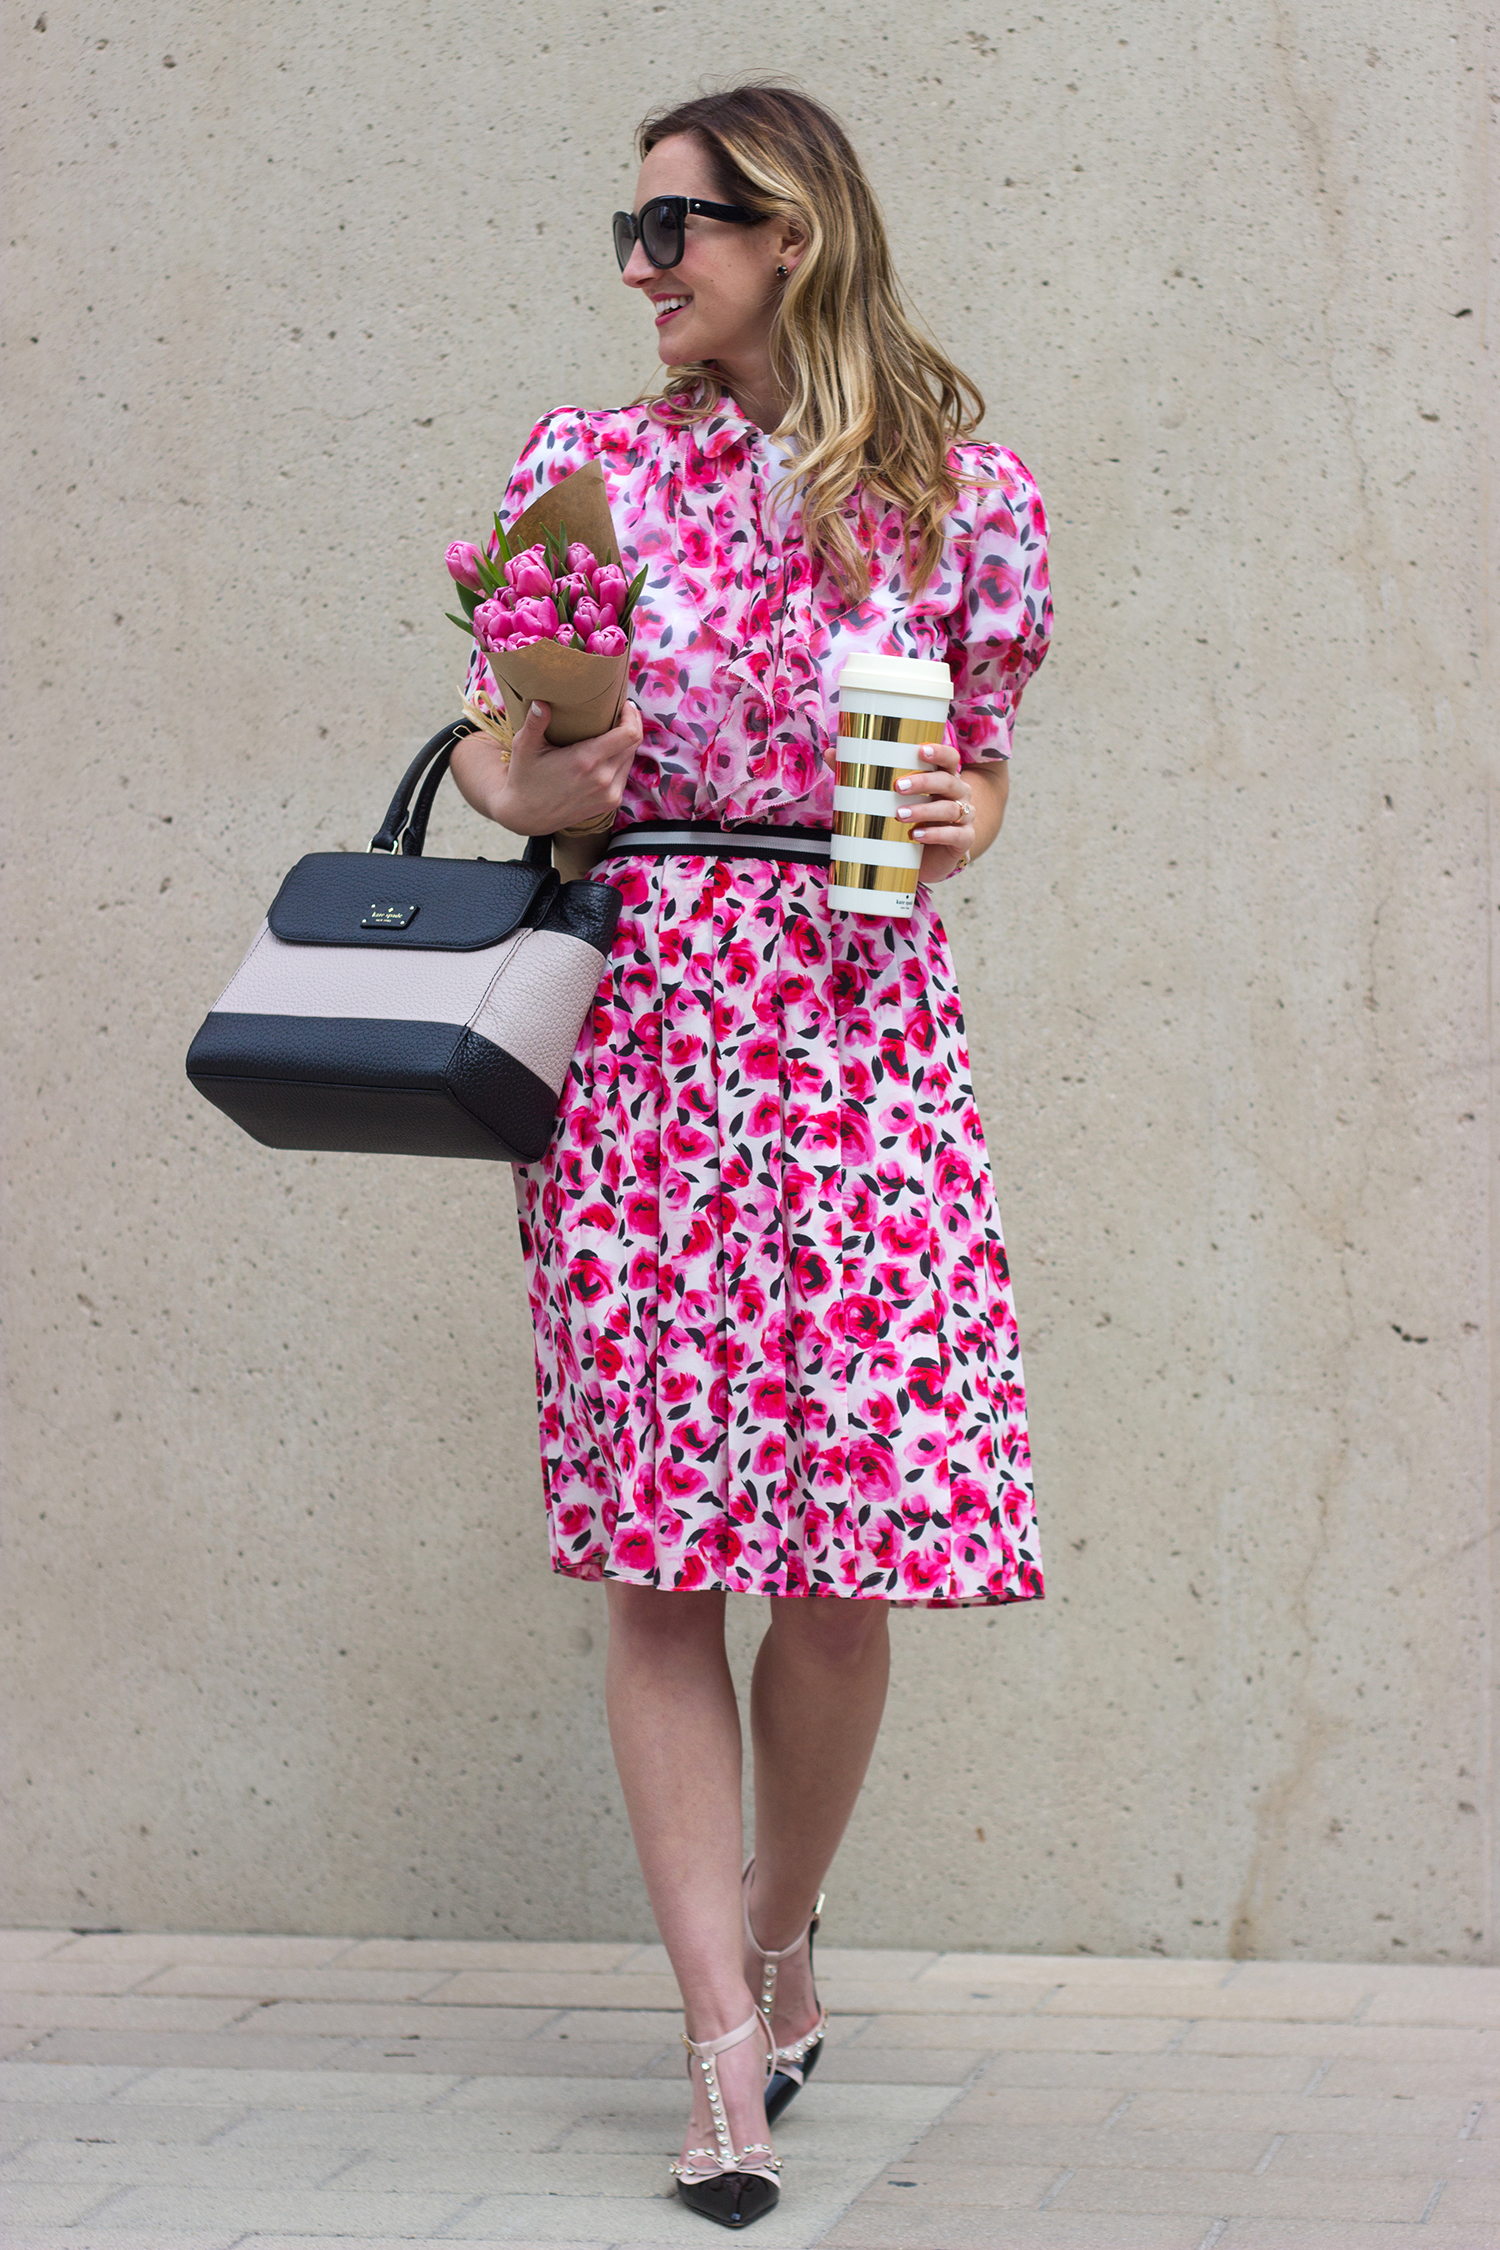 livvyland-blog-olivia-watson-austin-texas-fashion-blogger-kate-spade-broome-street-everyday-tee-white-rose-pleated-skirt-pink-black-spring-outfit-17